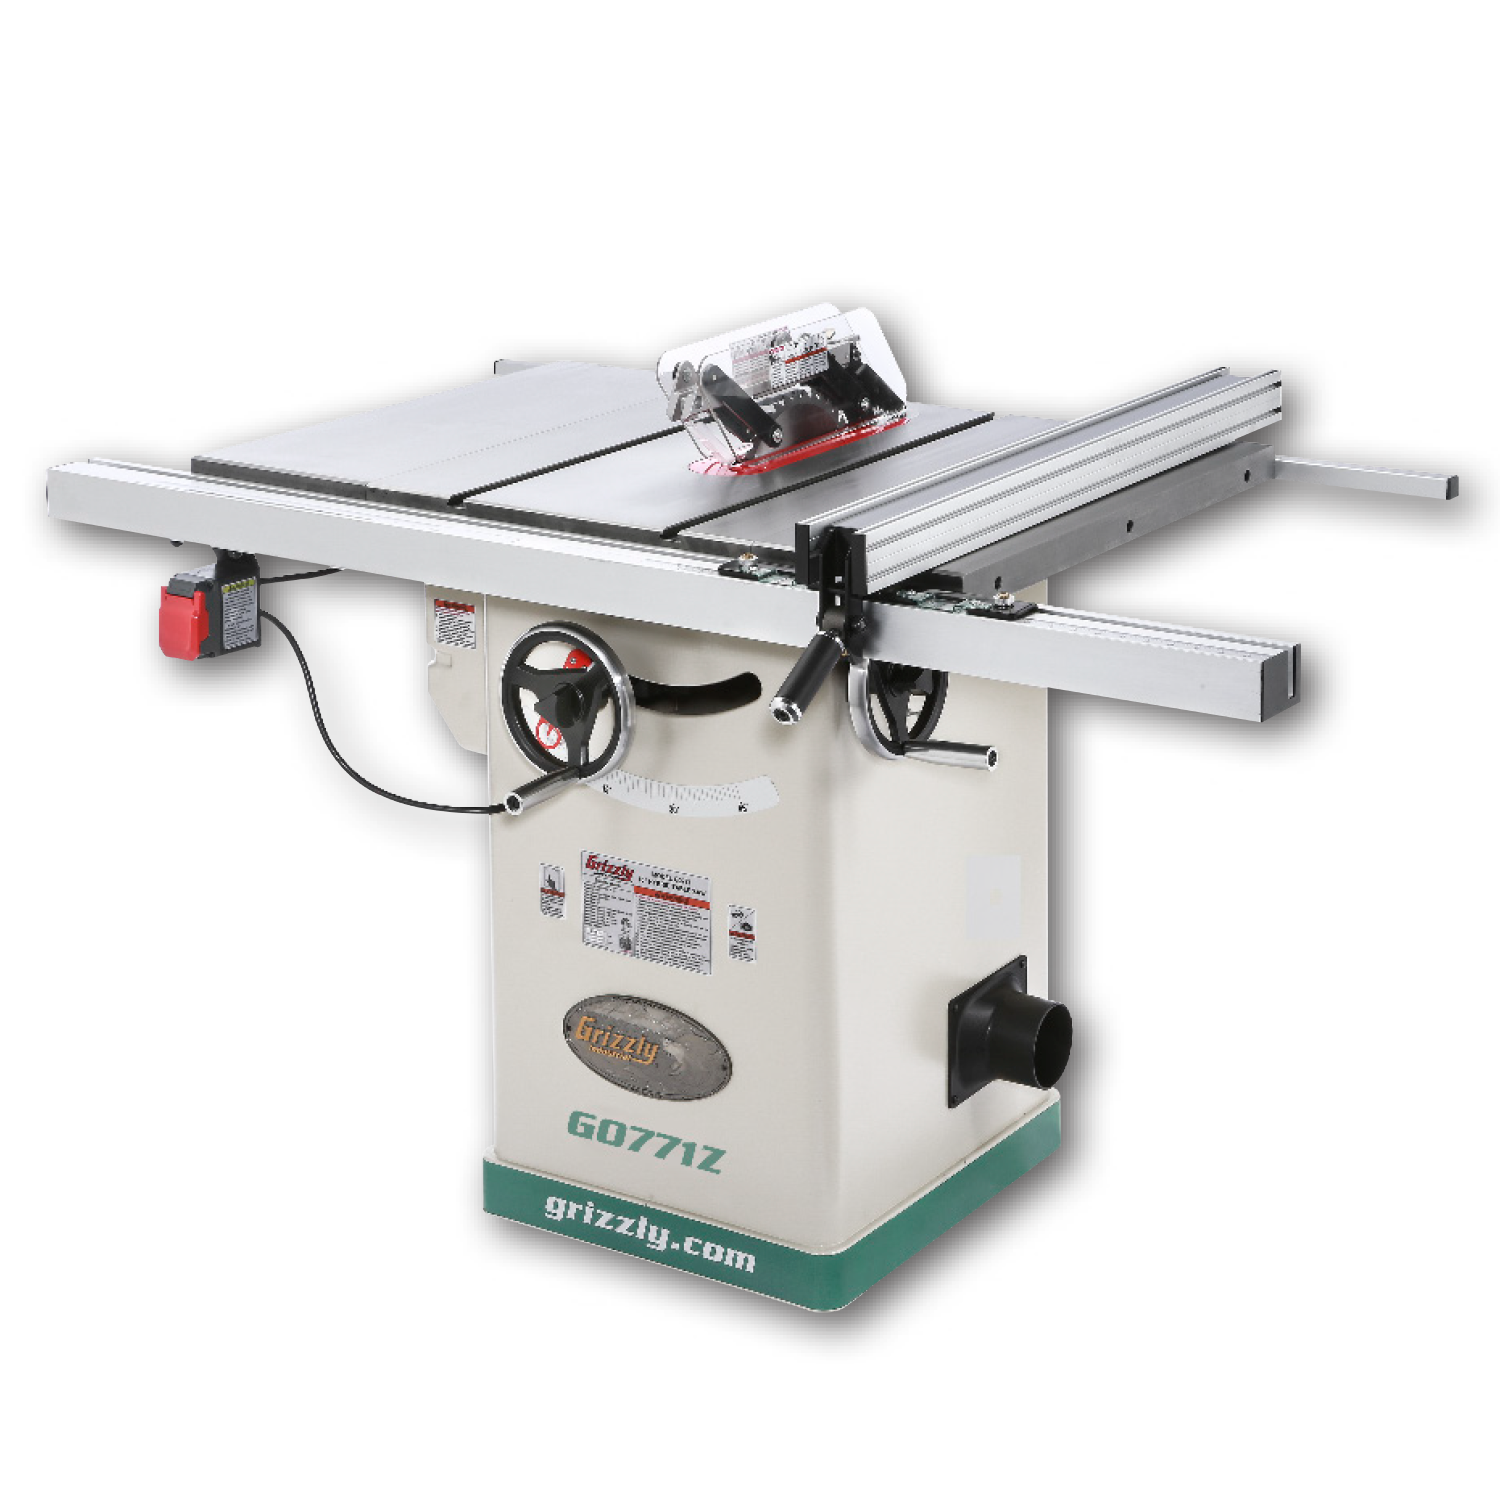 Image of G0771Z Table Saw